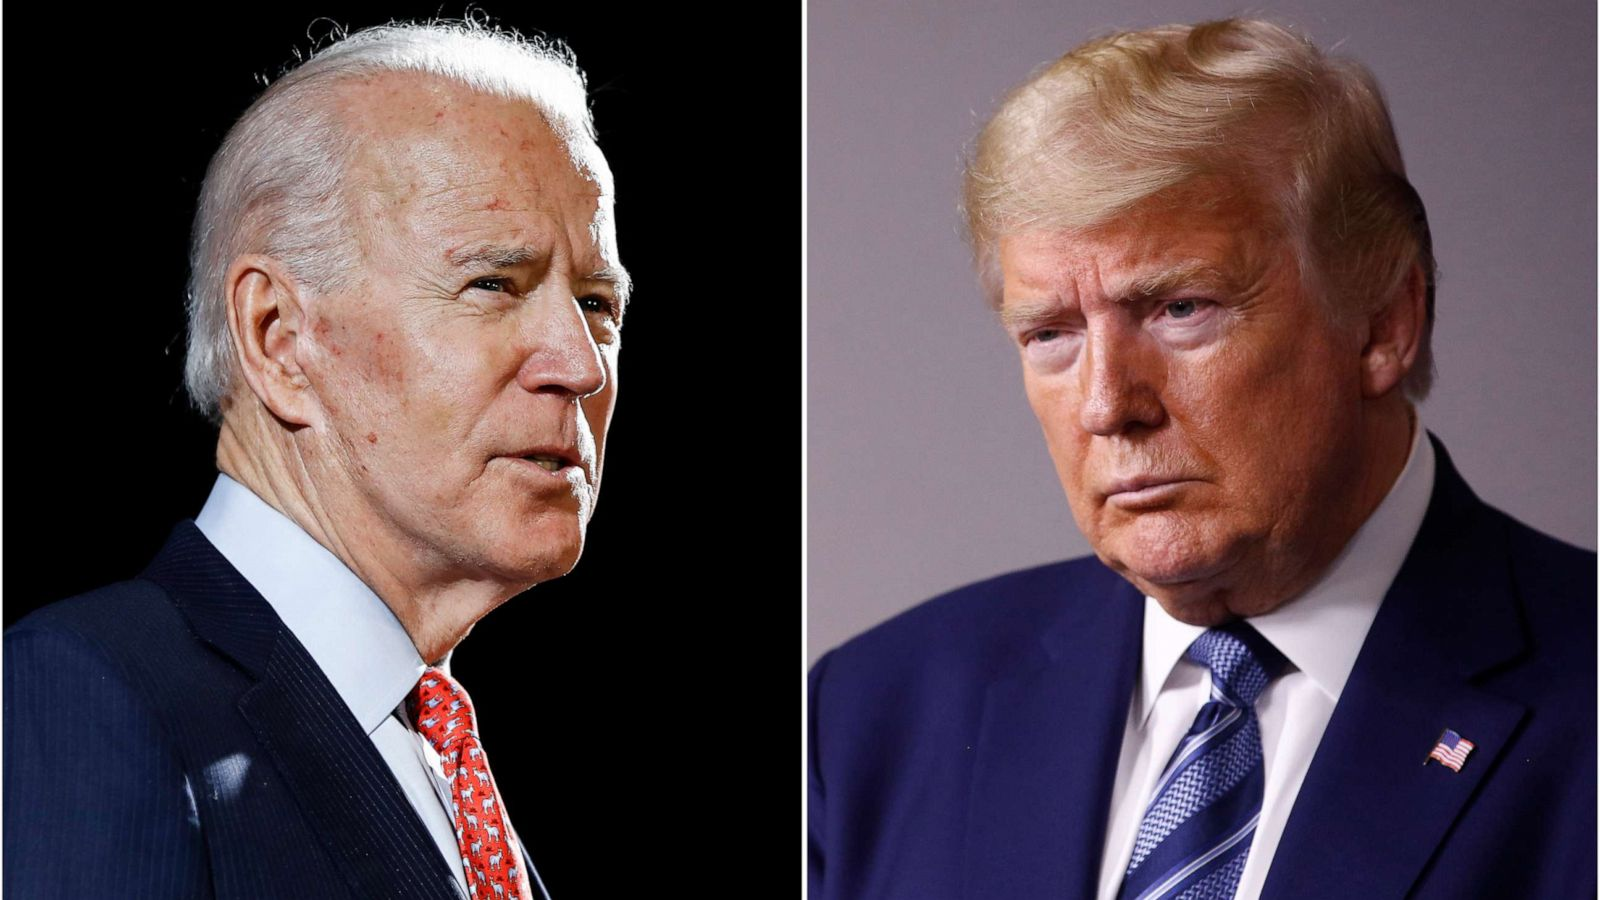 The Note: Trump cedes ground across the board to Biden - ABC News